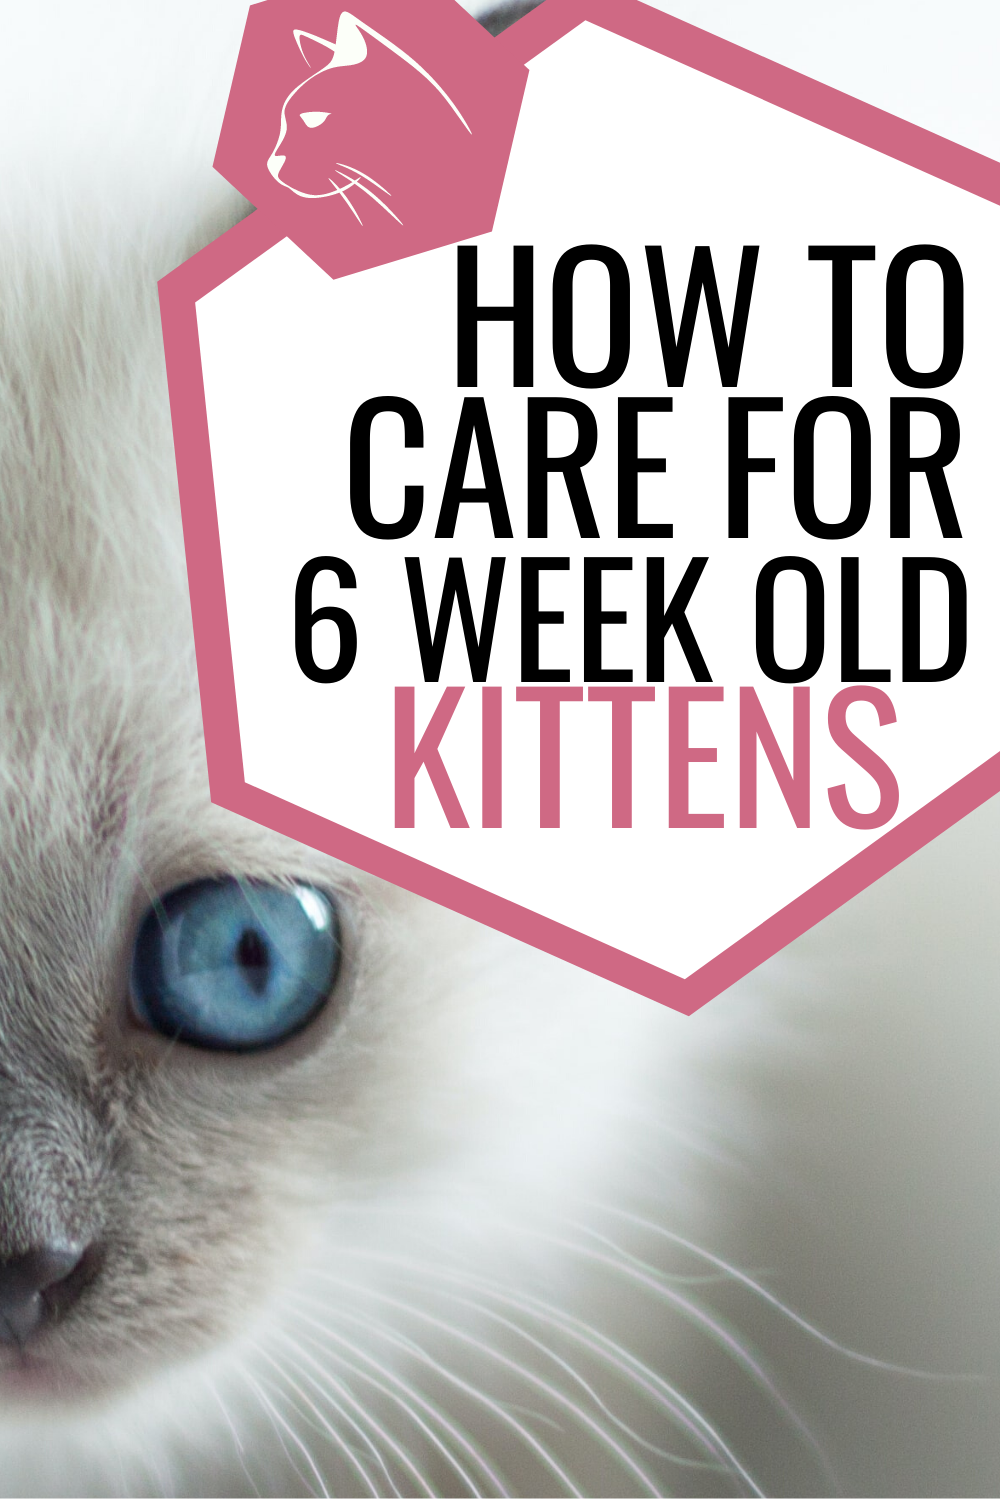 The Complete Guide To 6 Week Old Kittens Live Long And Pawspurr In 2020 6 Week Old Kitten Kitten Care Newborn Kittens